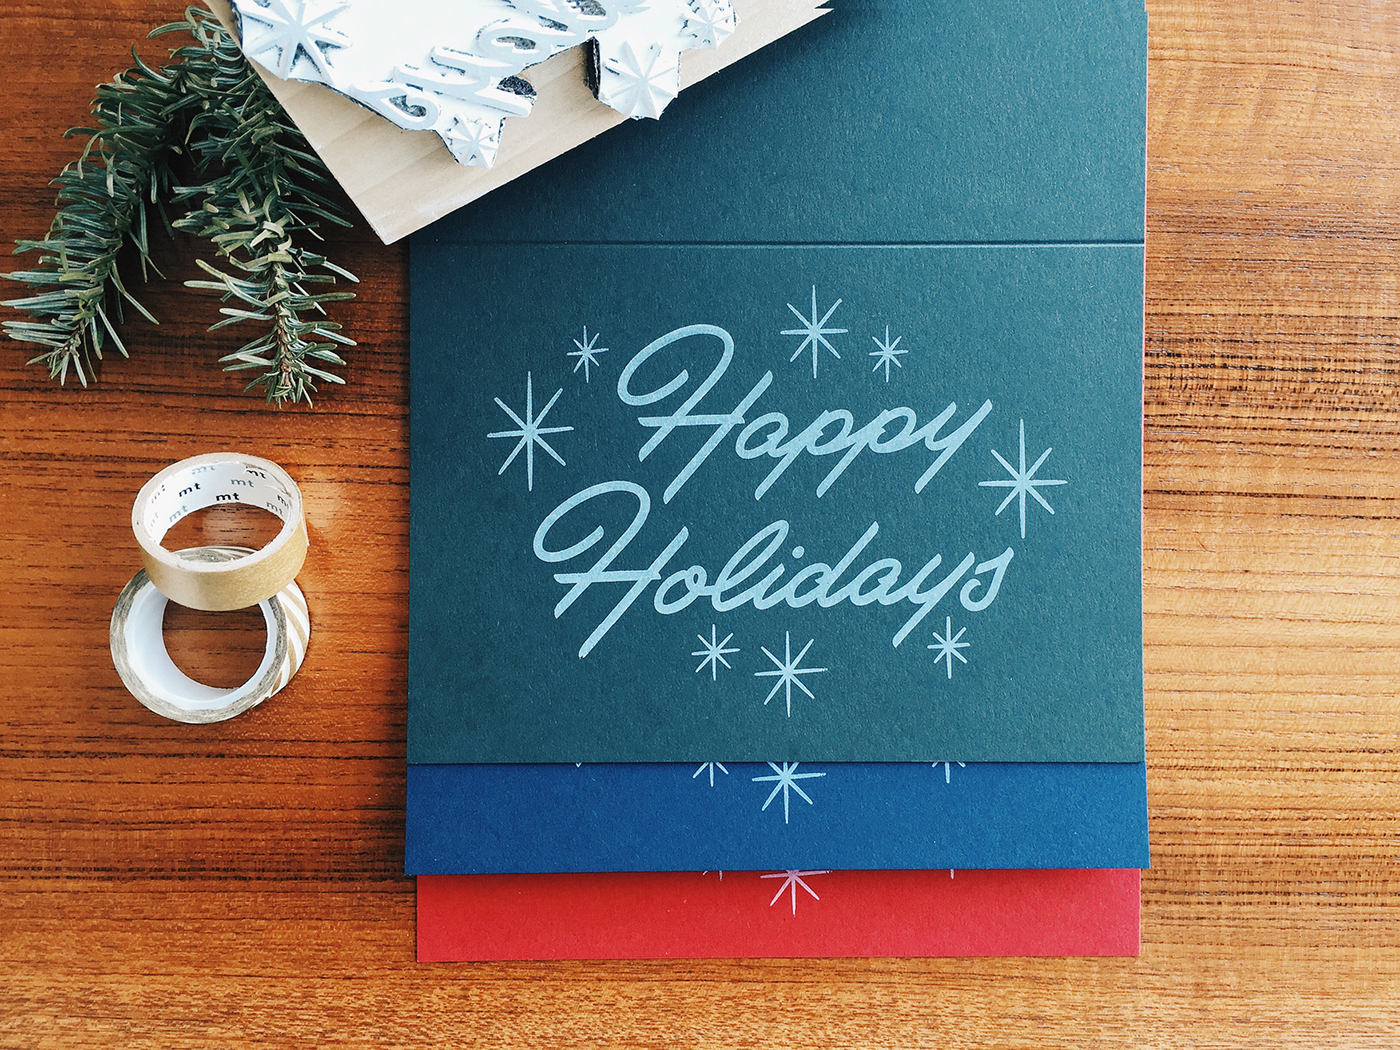 The most creative greeting cards for christmas print24 blog by drew melton via behance kristyandbryce Choice Image